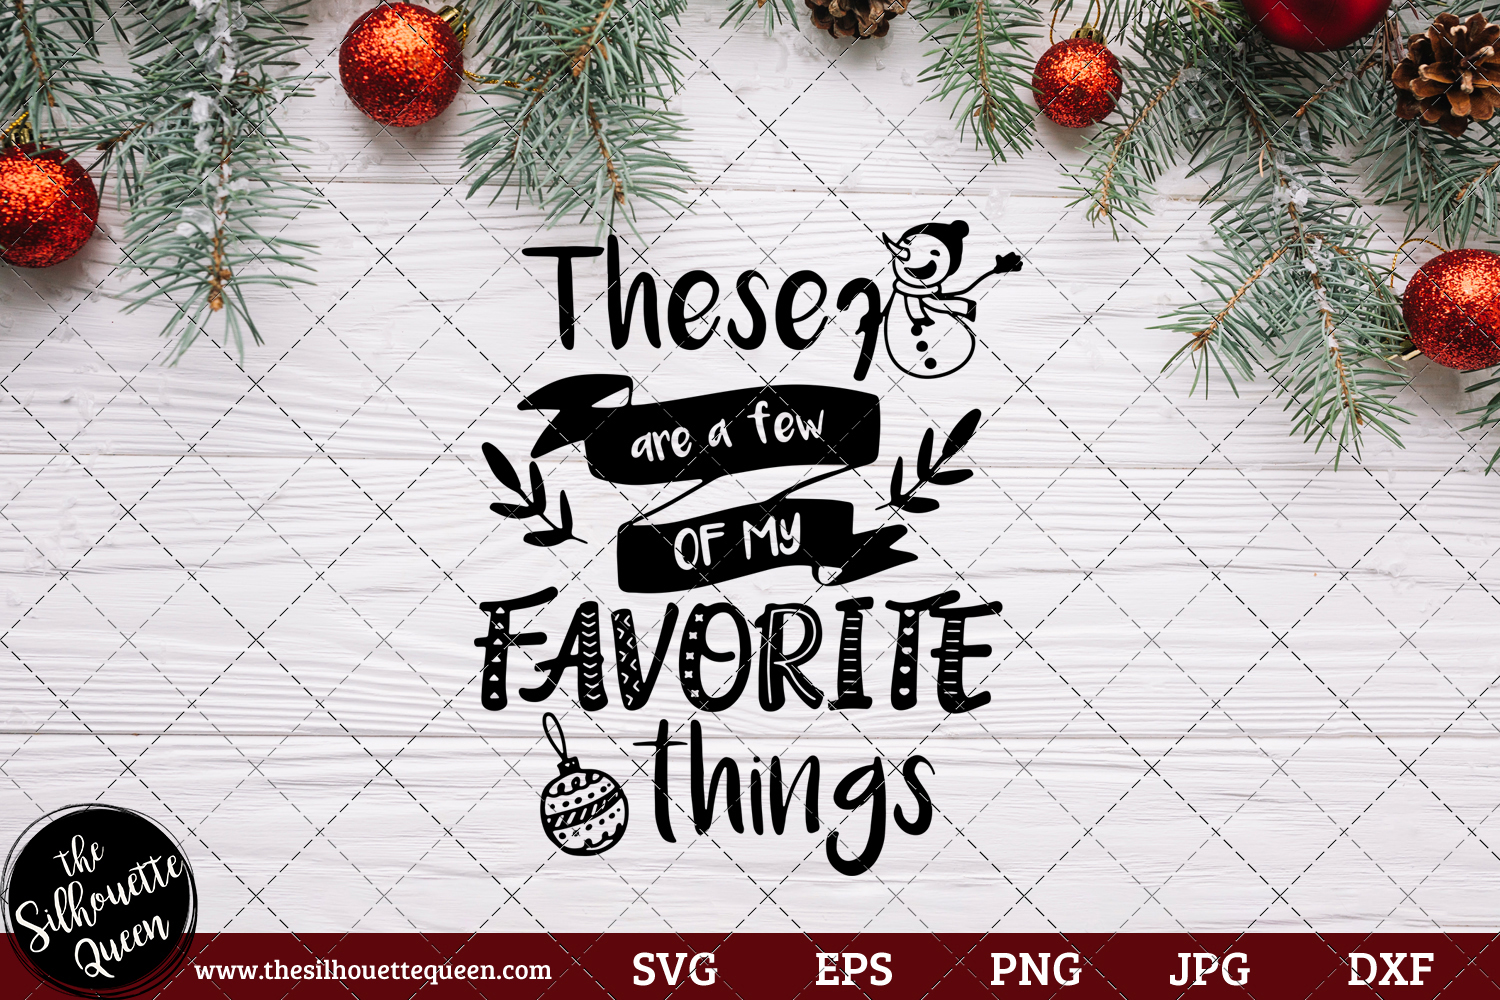 Download Free These Are A Few Of My Favorite Things Graphic By for Cricut Explore, Silhouette and other cutting machines.